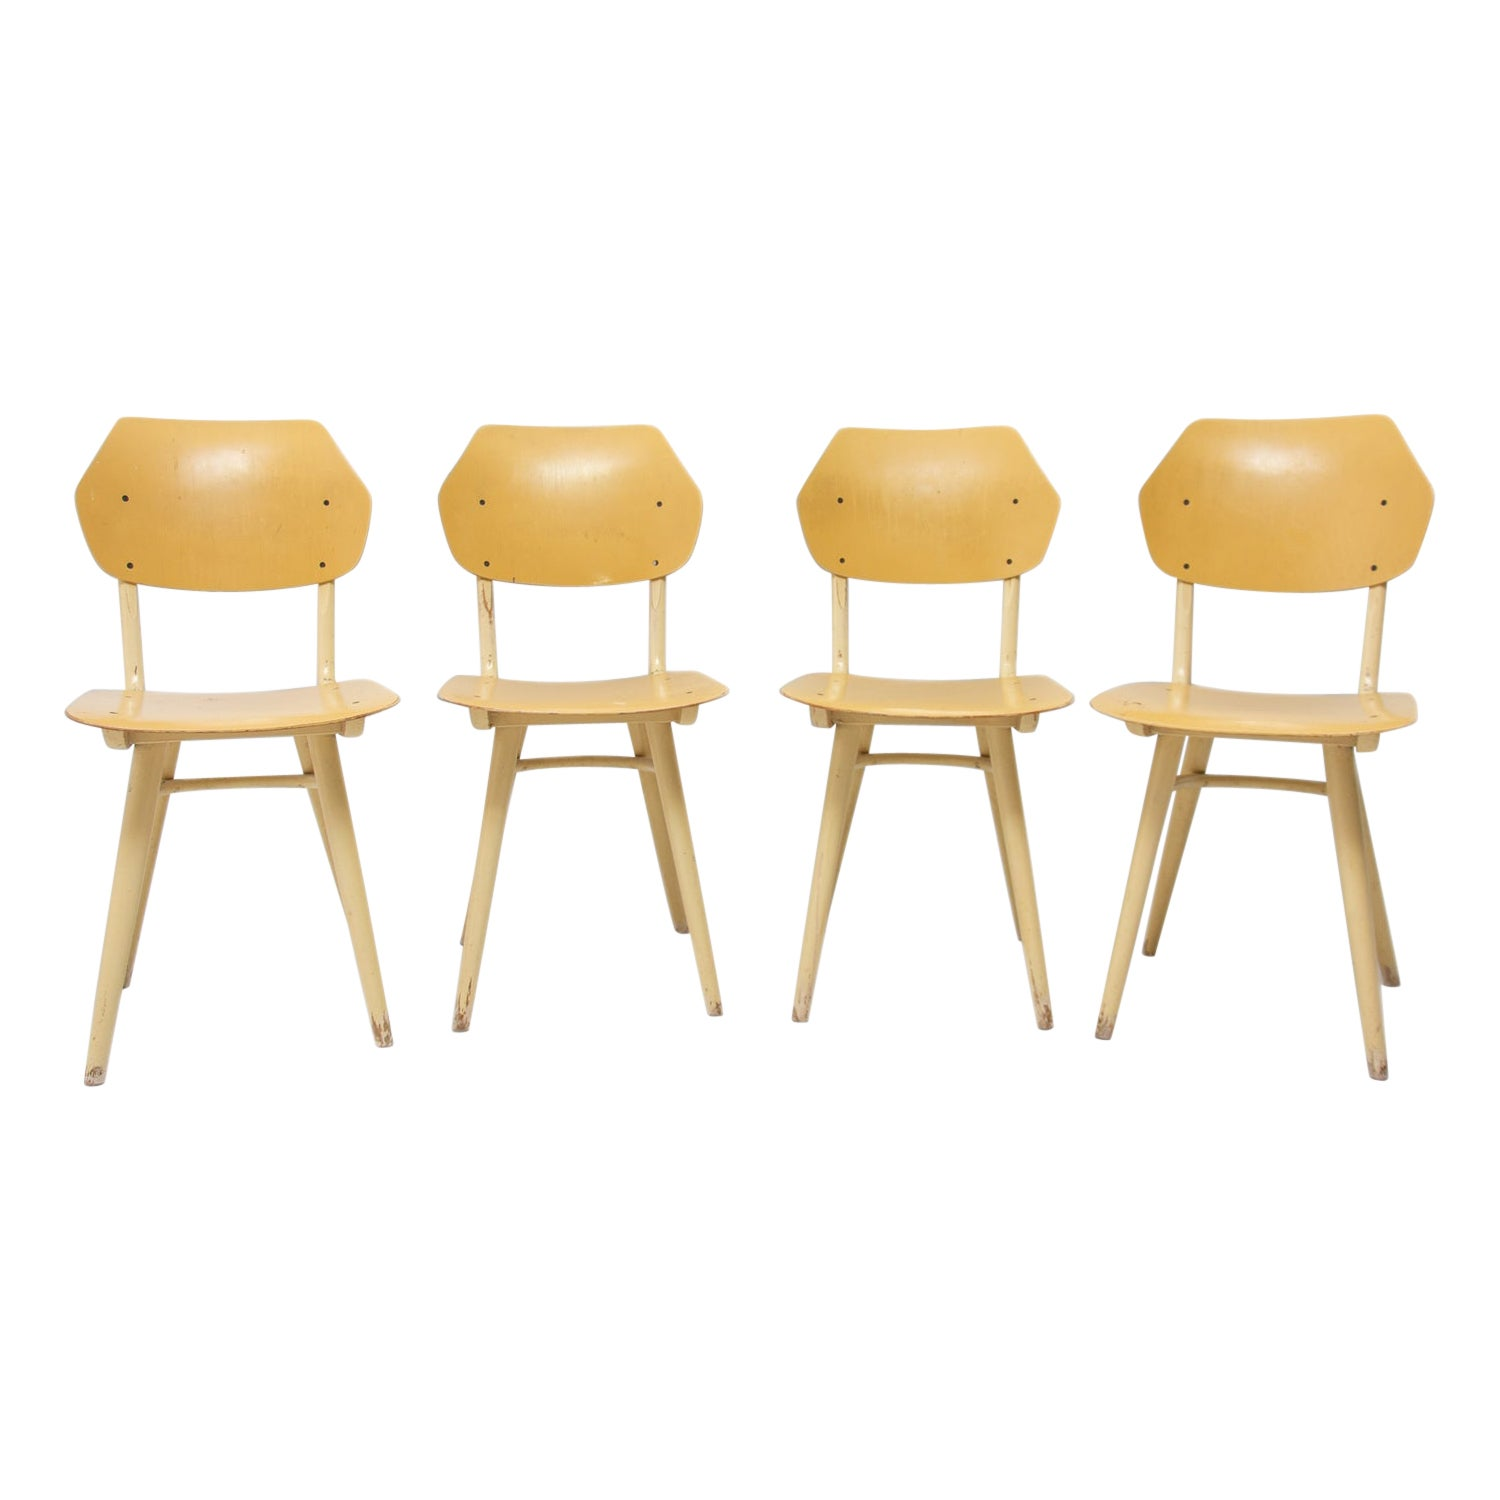 Midcentury Dining Chairs TON, Set of Four, 1960s